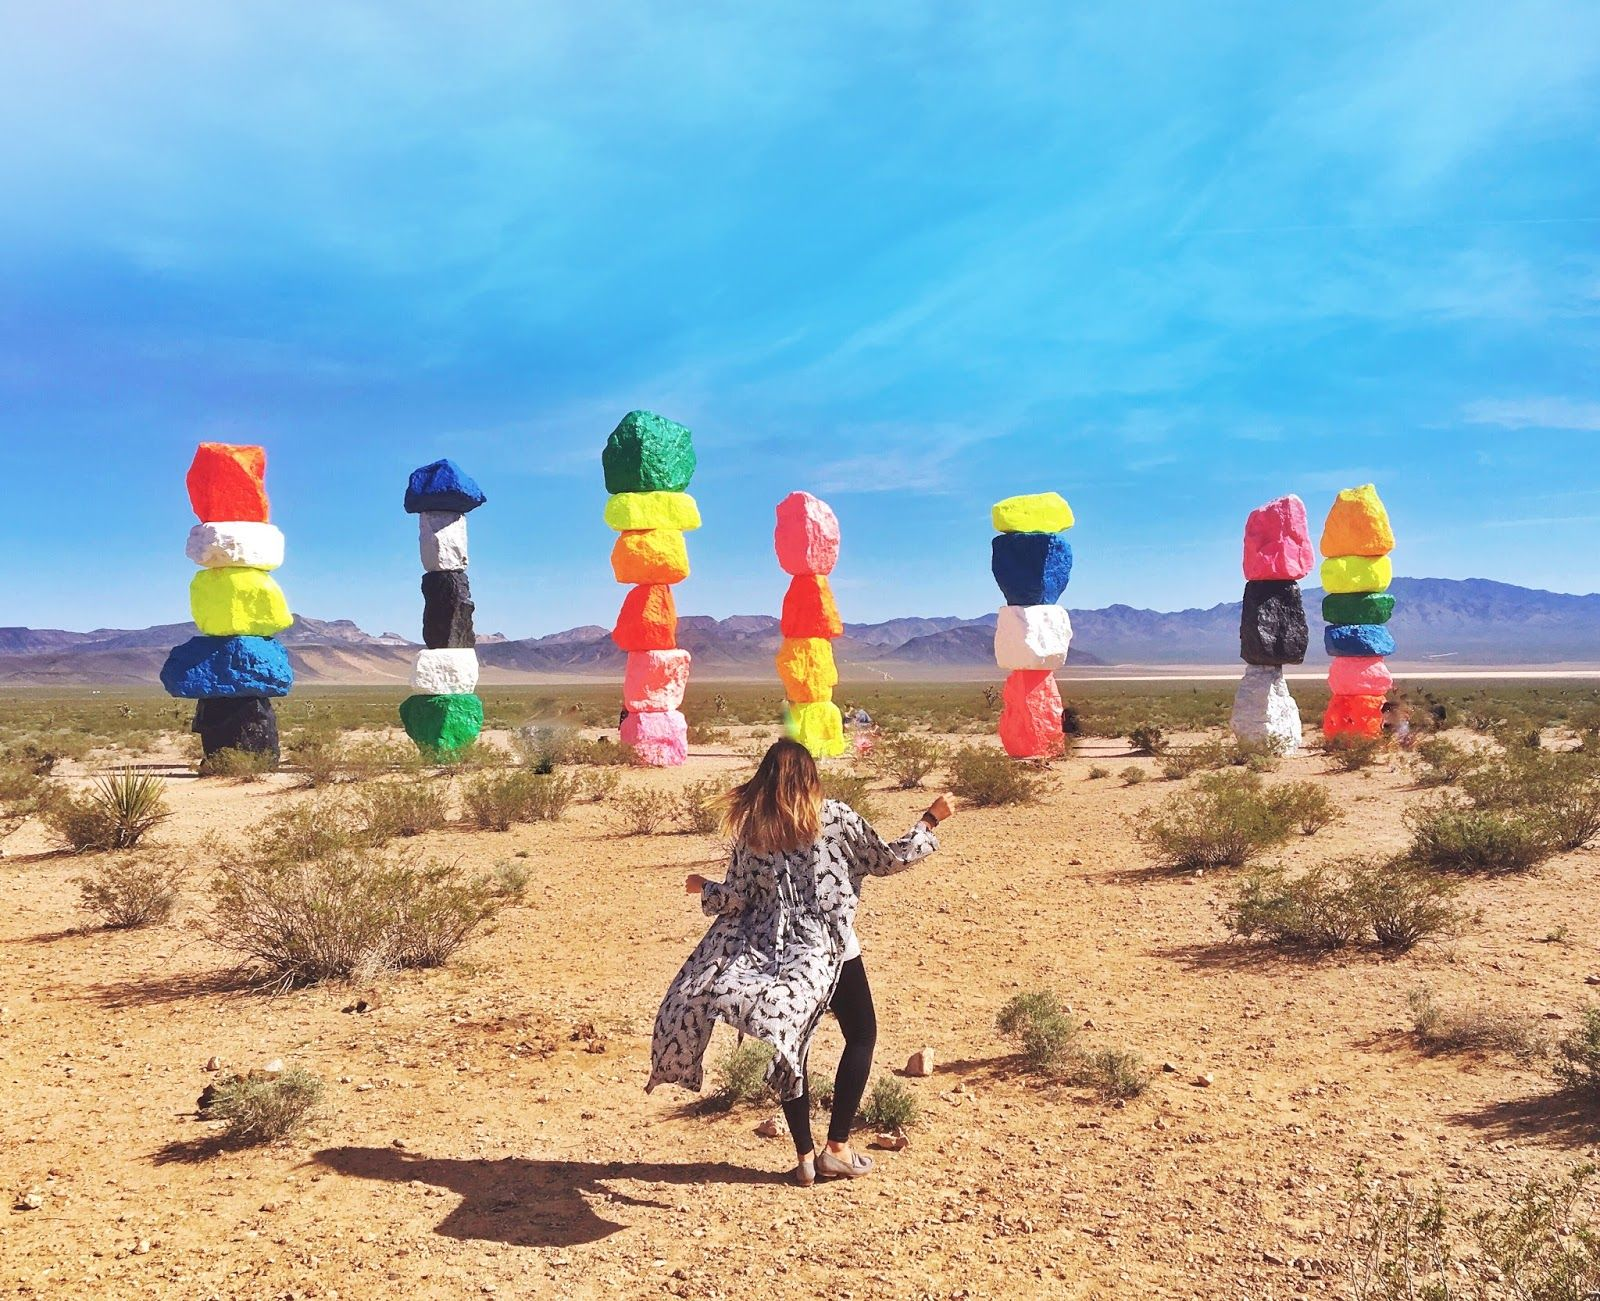 Los Angeles to Zion Road Trip - 3 Beautiful Stops We Recommend